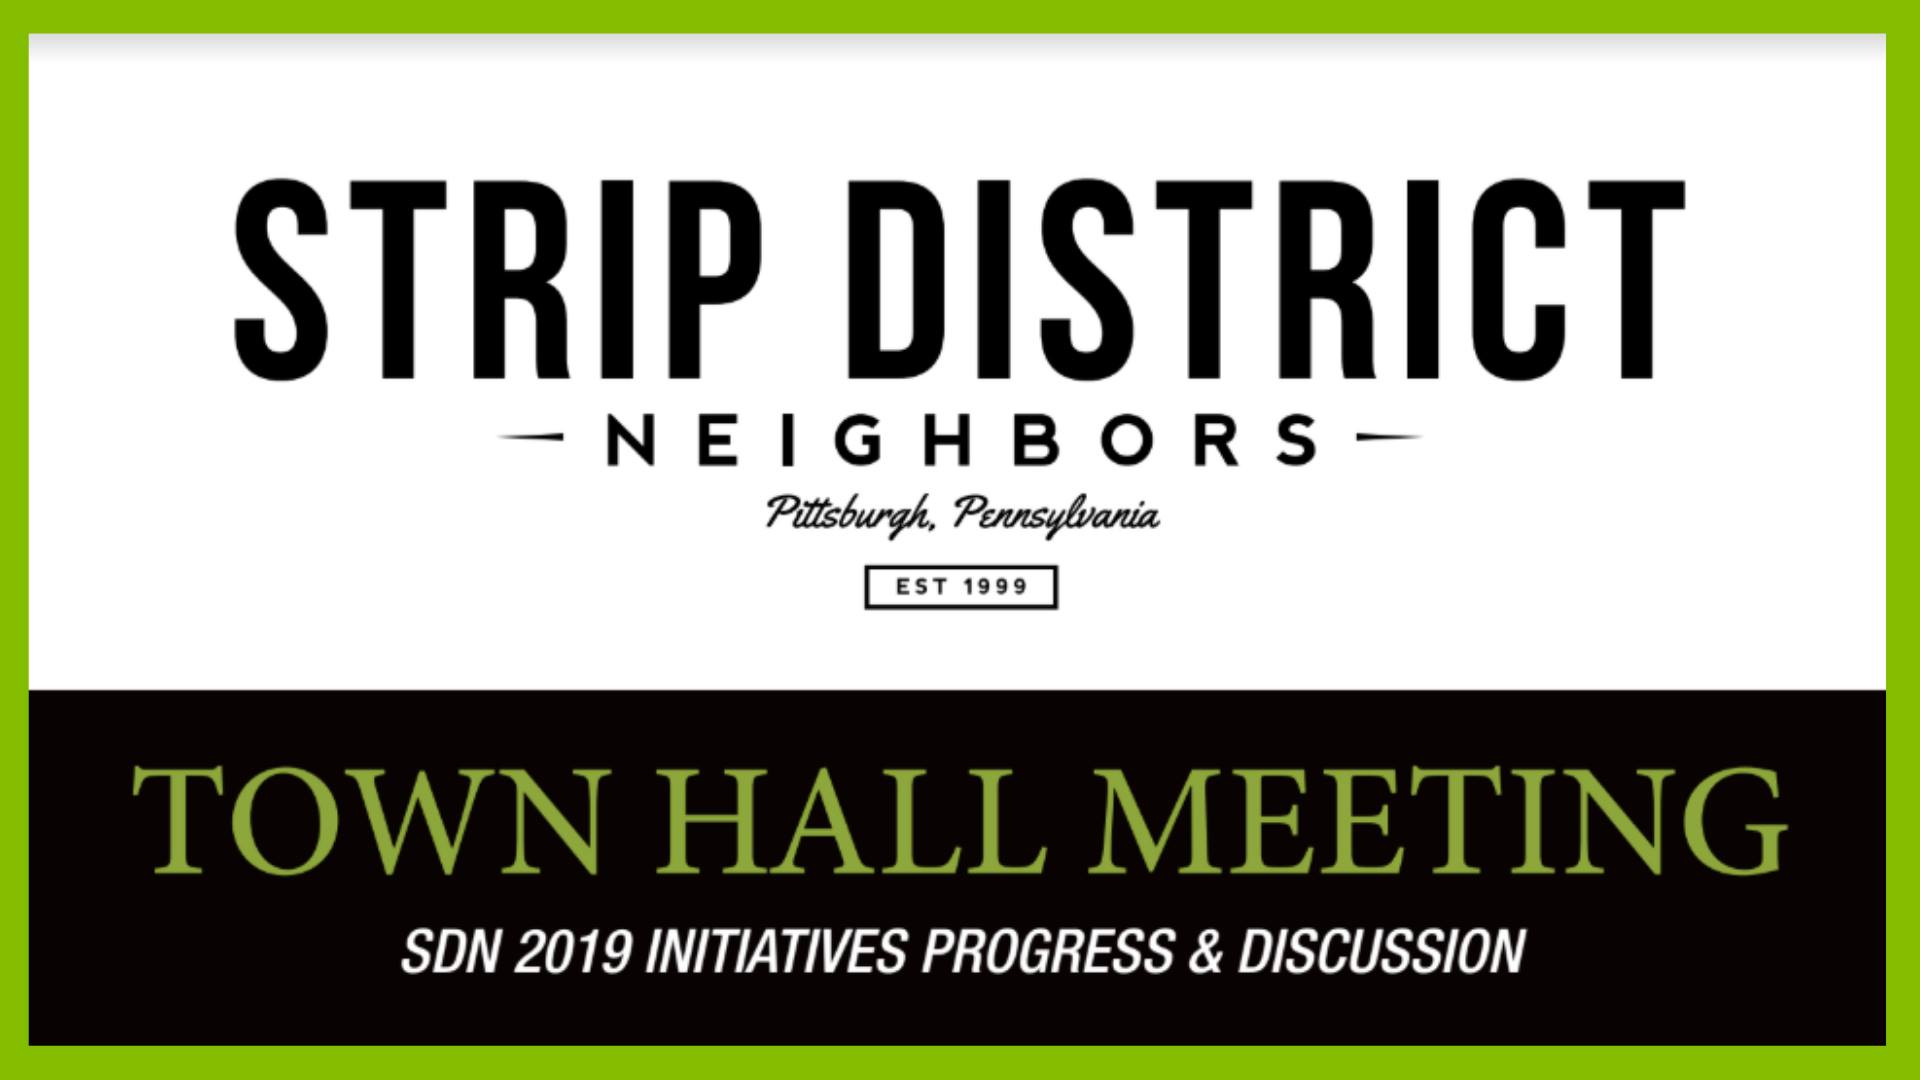 Strip District Neighbors Town Hall Meeting Pittsburgh